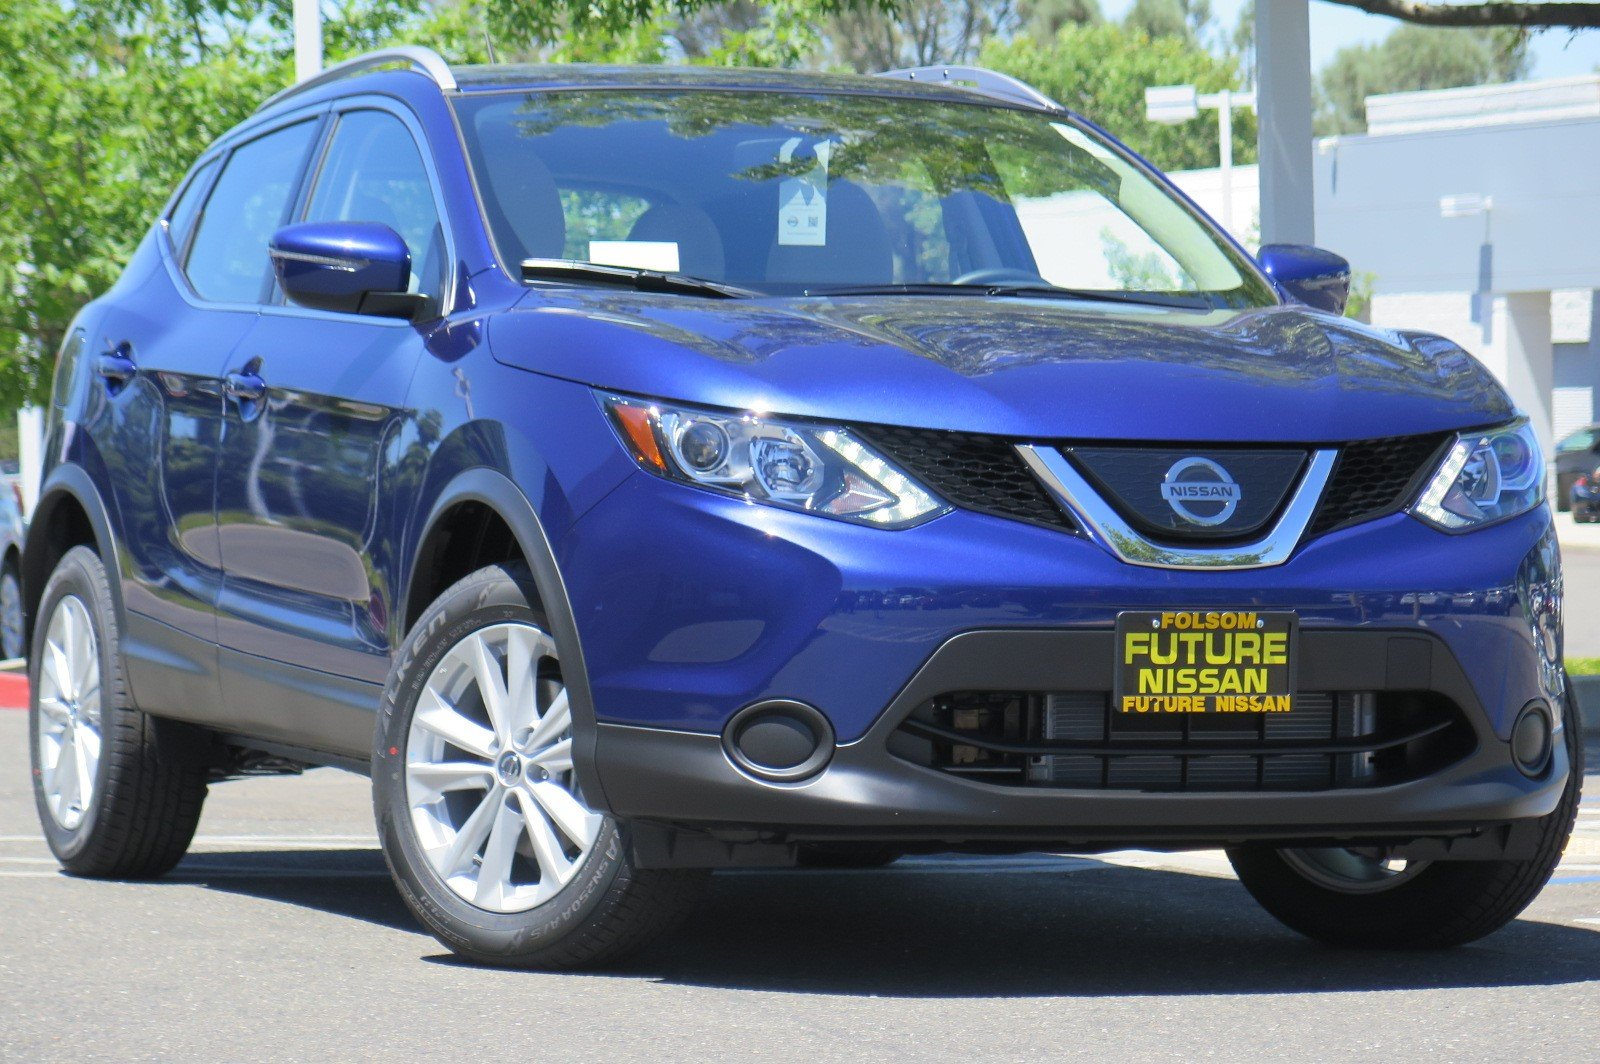 Nissan Rogue Service Manual: Restraints